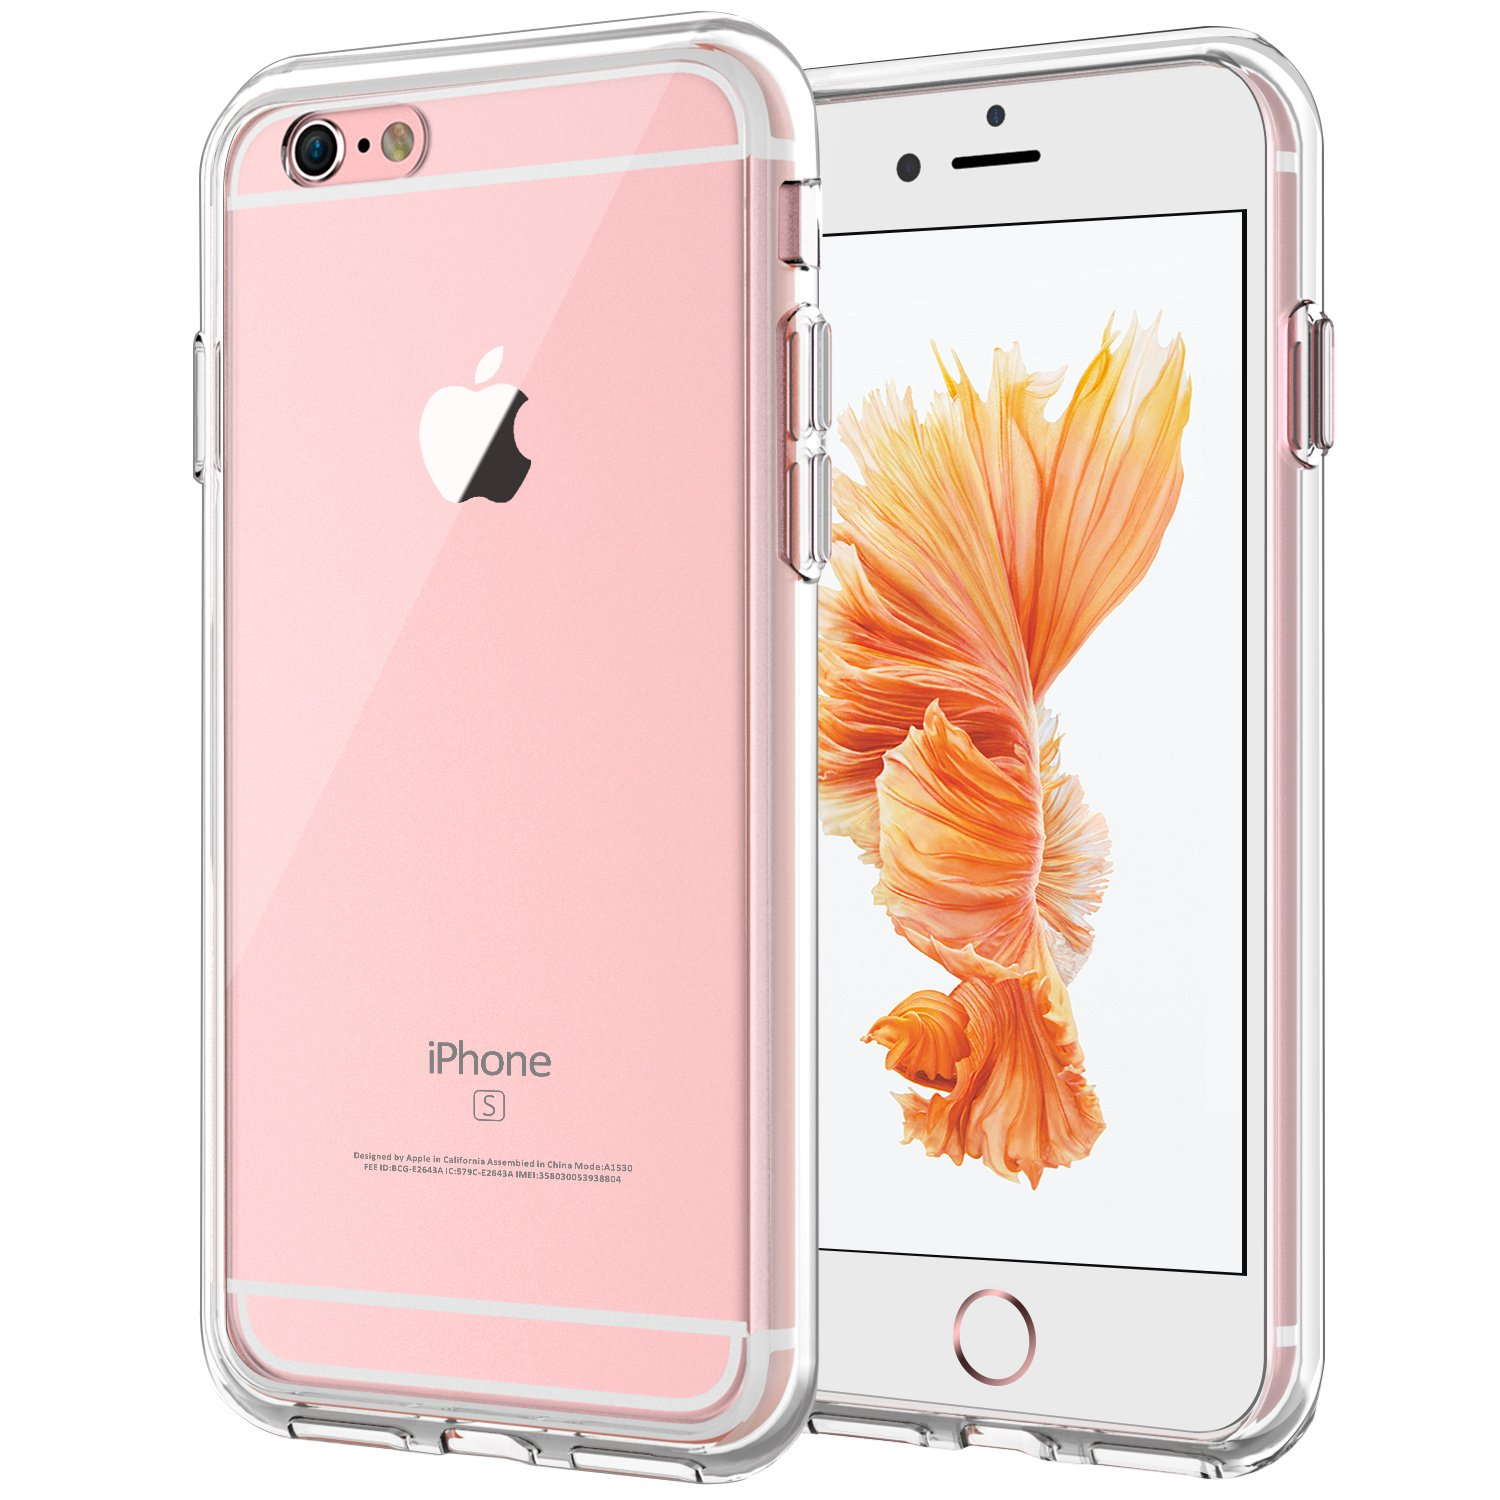 JETech Case for Apple iPhone 6 and iPhone 6s, Shock-Absorption Bumper Cover, Anti-Scratch Clear Back (HD Clear)